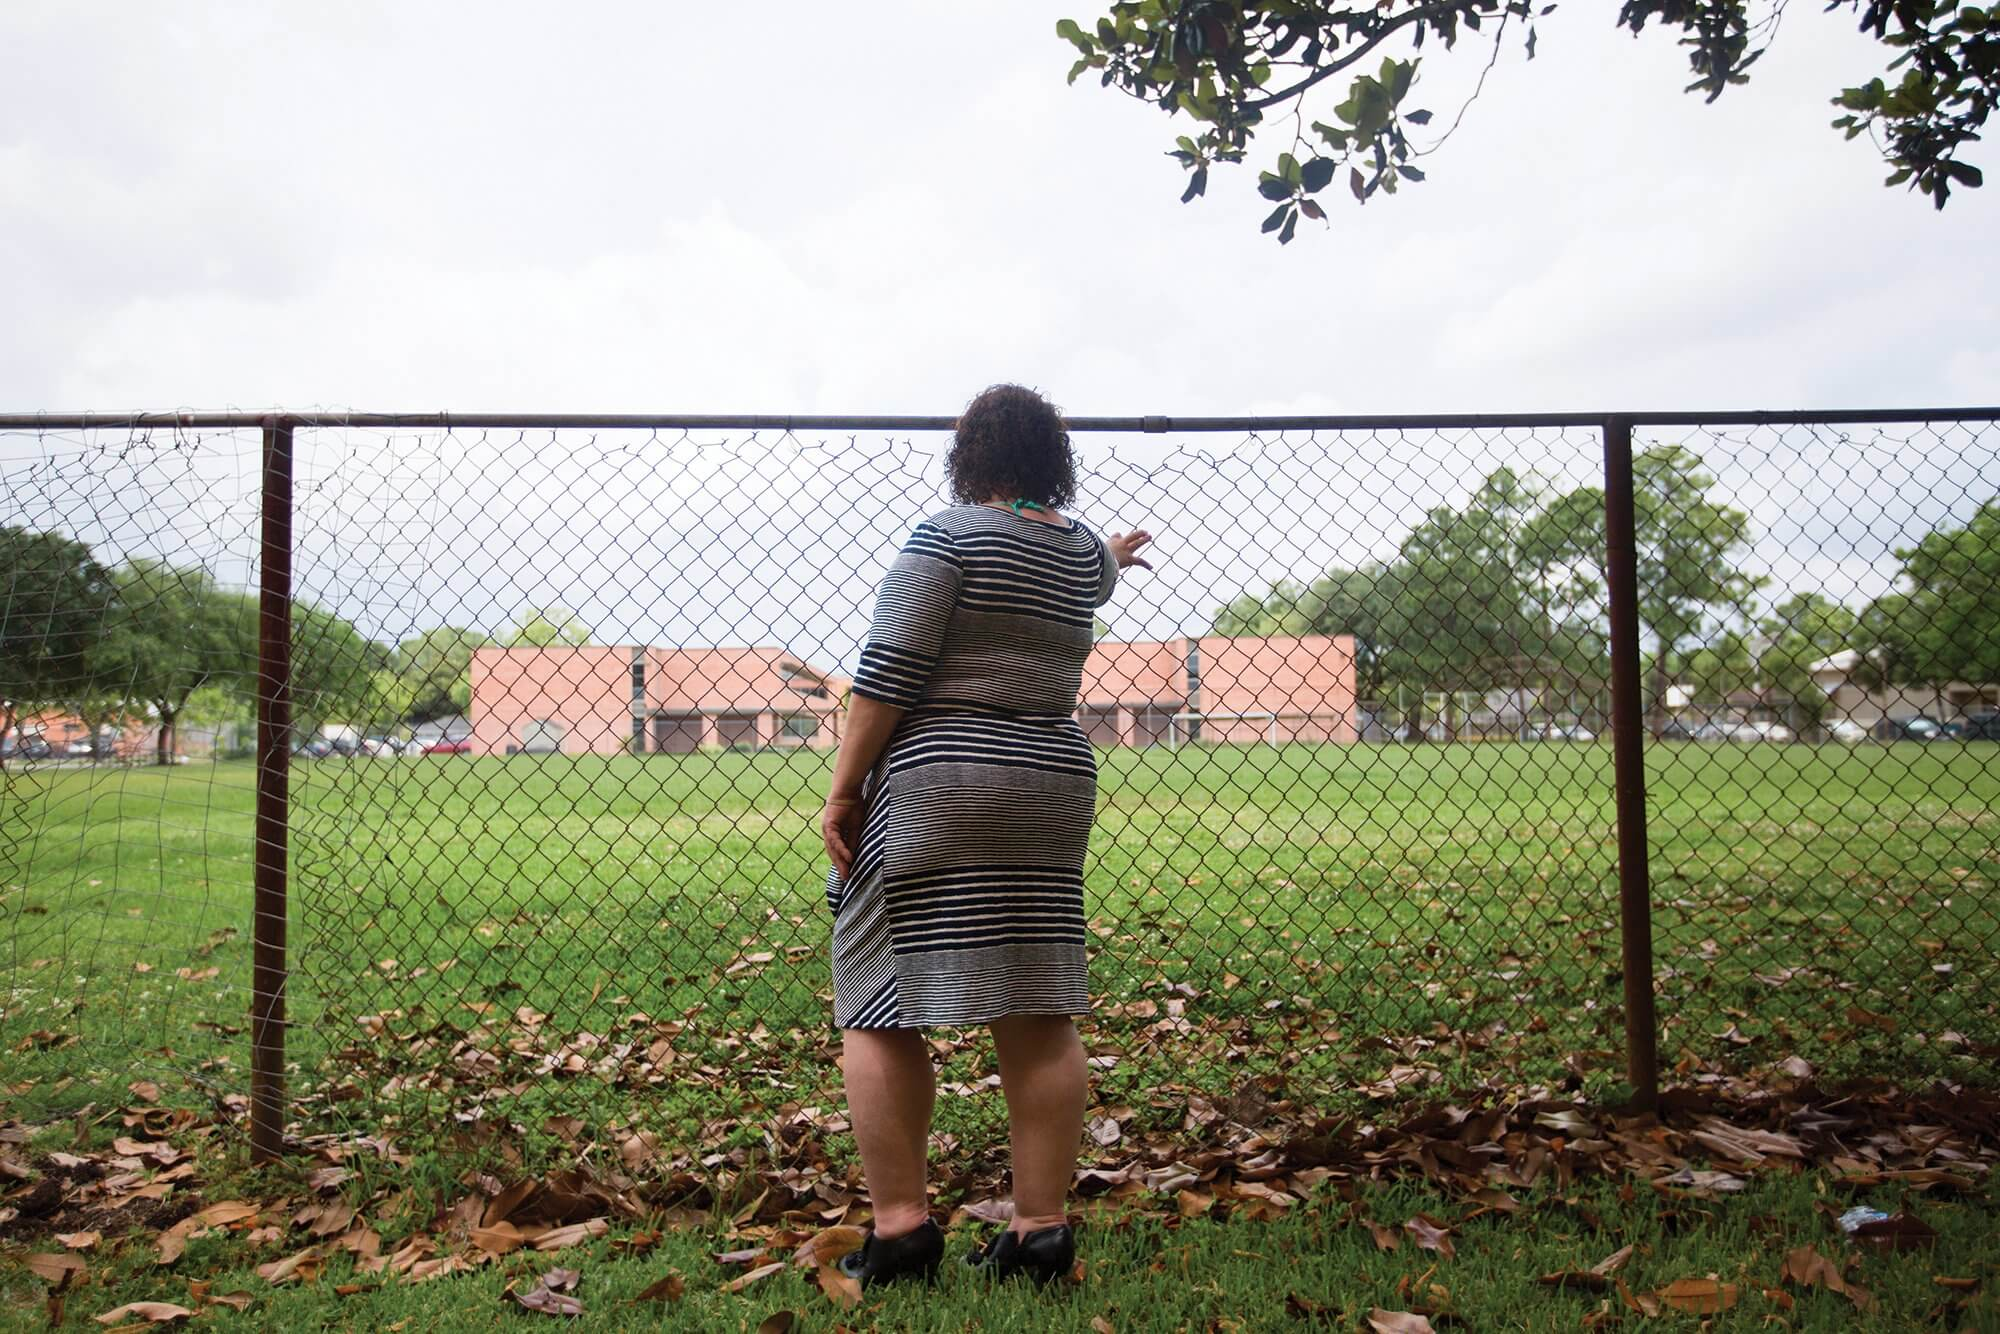 Mari, a victim of sex trafficking, now resides at Angela House, a residential treatment program to help women transition back into society after leaving the criminal justice system.